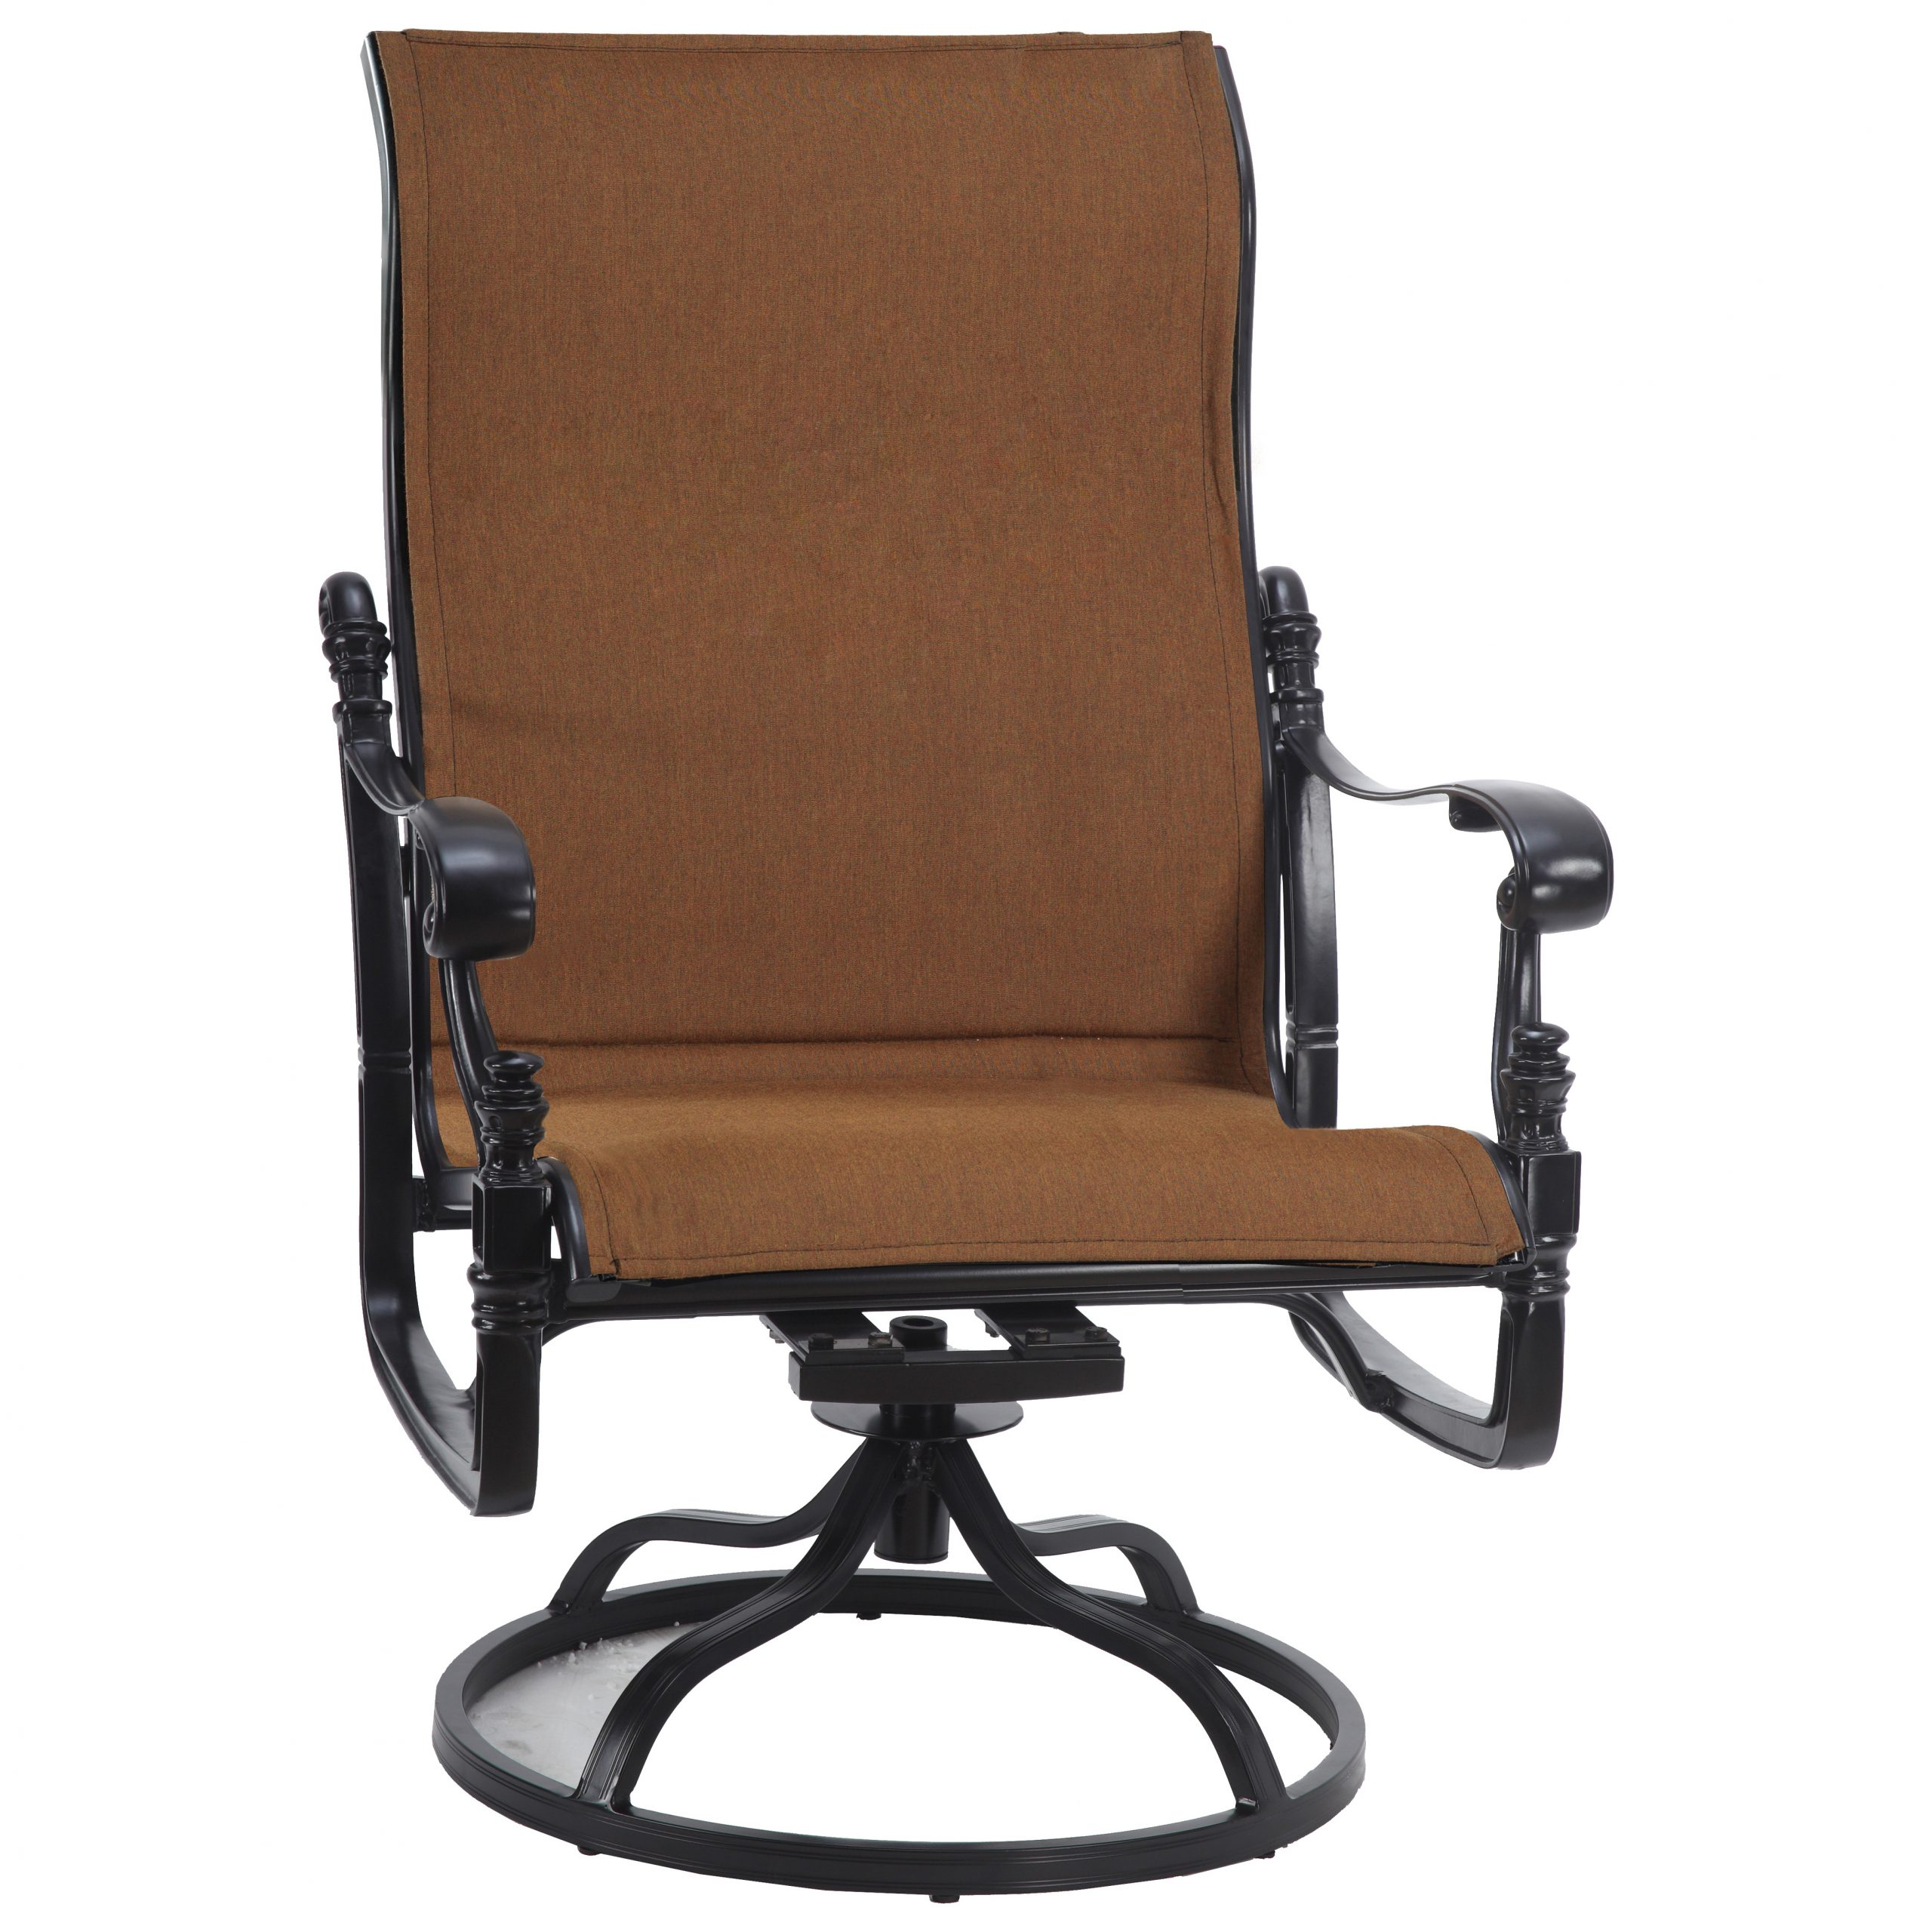 Padded Sling High Back Swivel Chairs Intended For Trendy Gensun Florence Padded Sling Cast Aluminum High Back Swivel Rocking Lounge Chair (View 11 of 30)